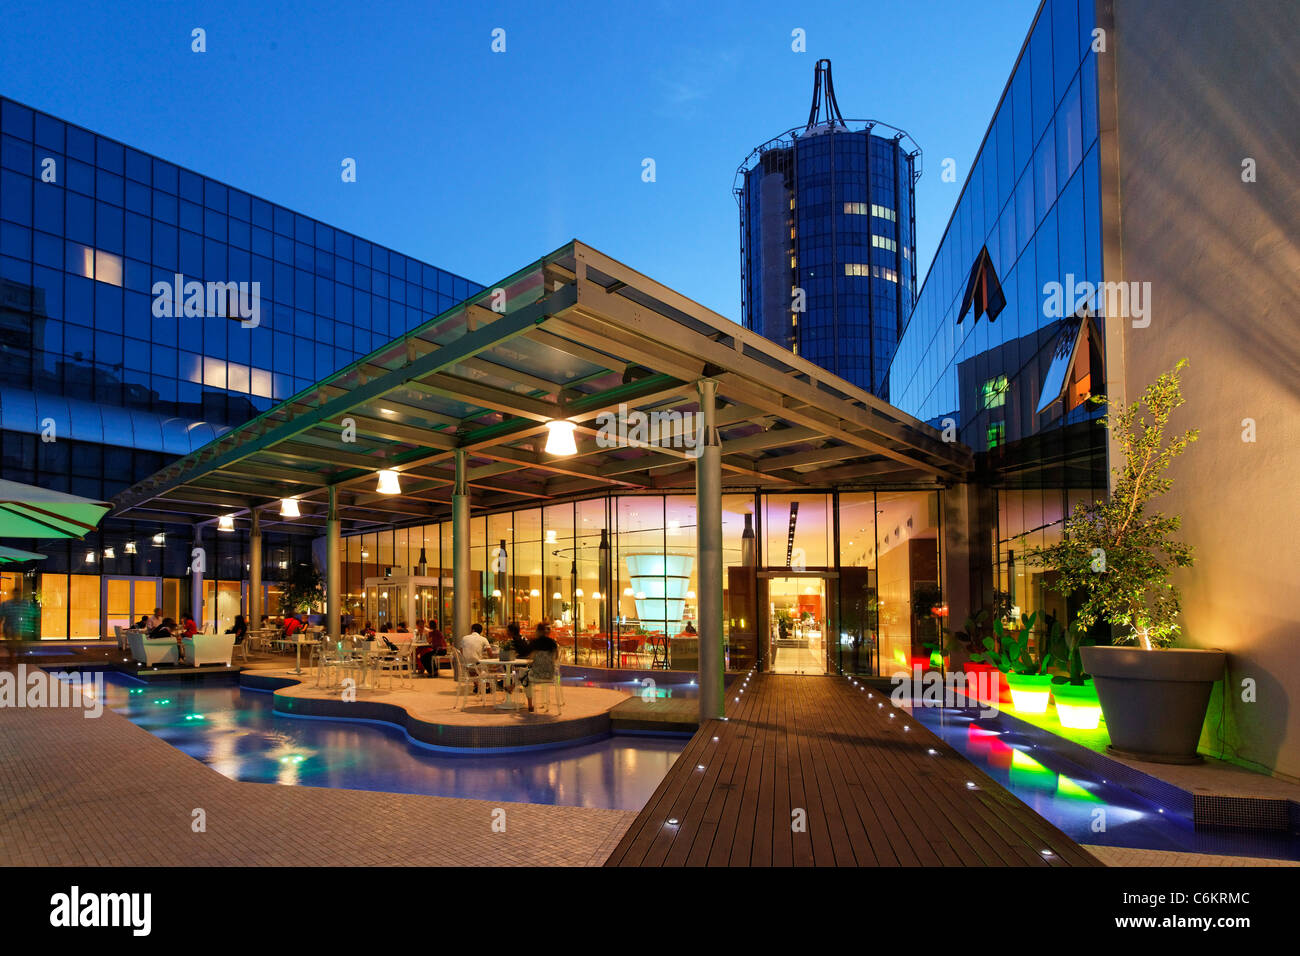 T hotel cagliari italy sardinia stock photo 38544364 alamy for Design hotel sardinien